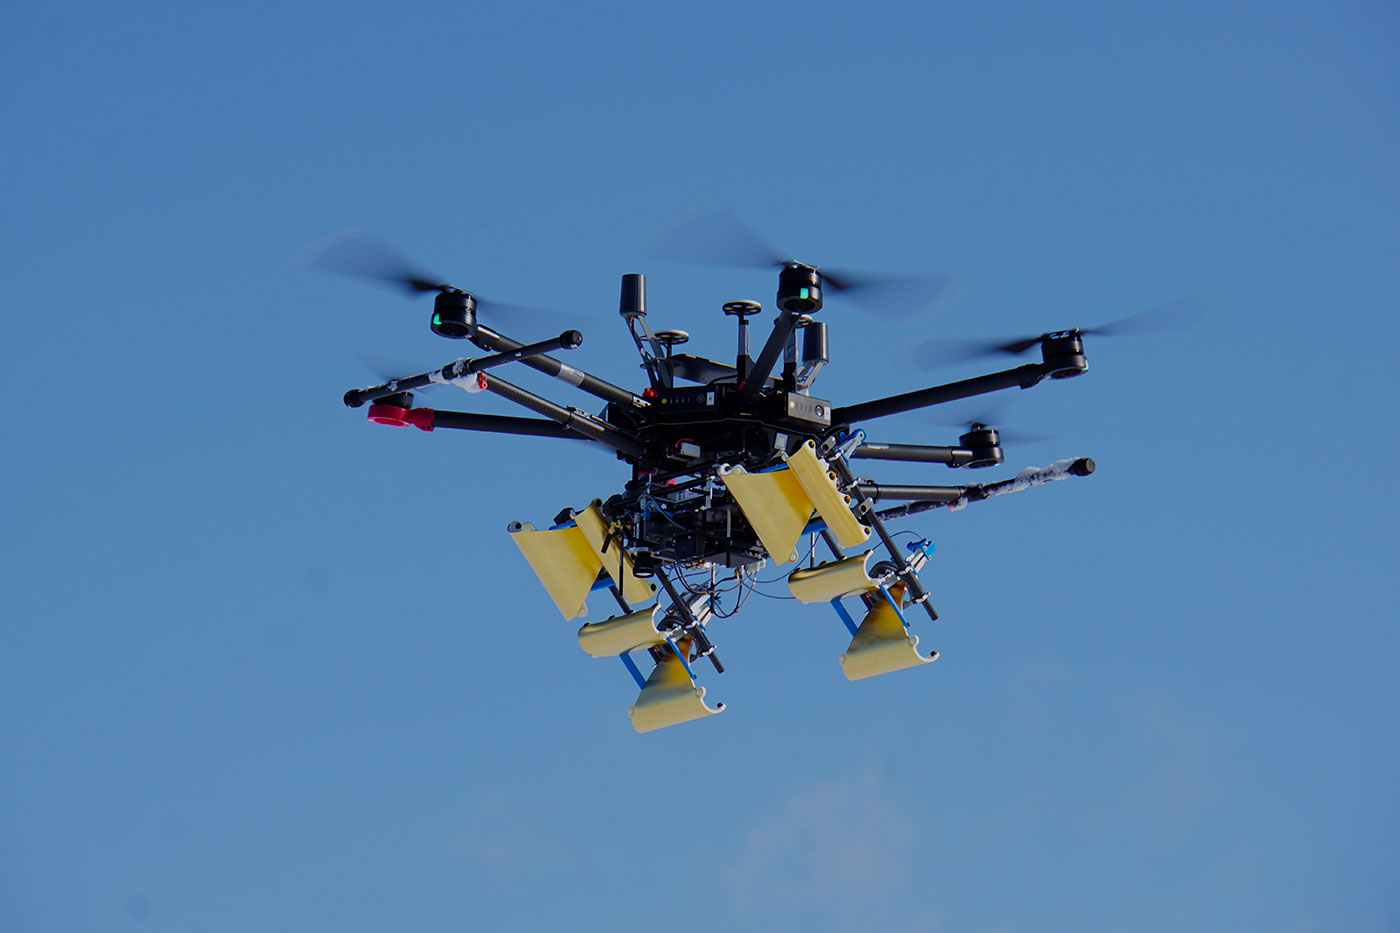 Drone flying in the sky